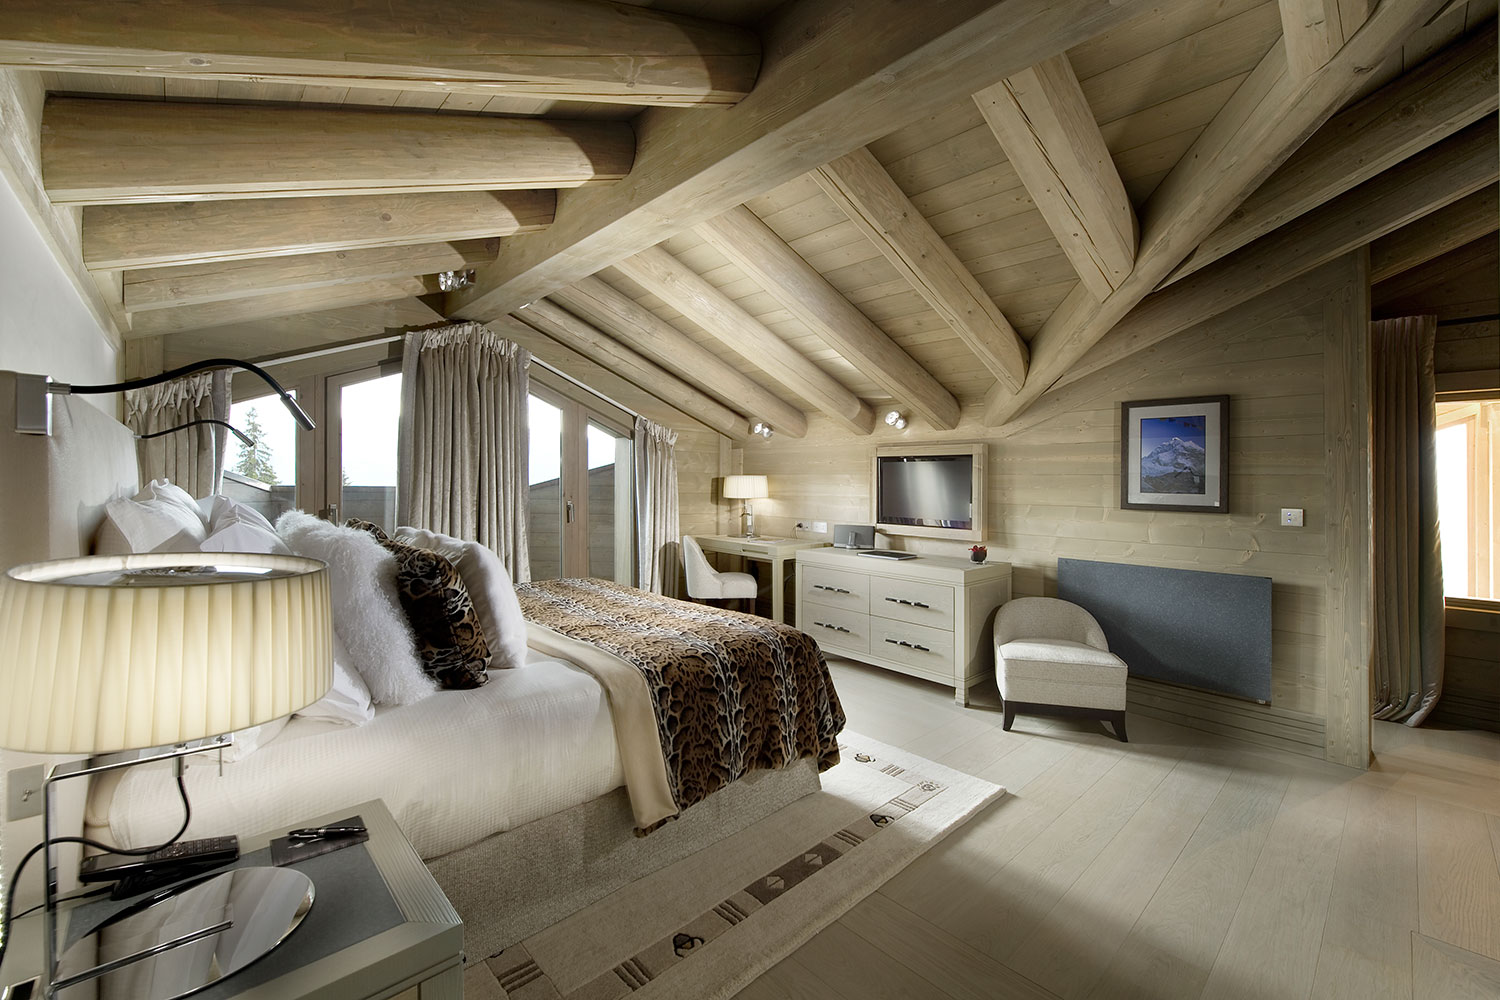 Best Bed In The World The World 39s Best Hotel Bed And Bedrooms For Skiing